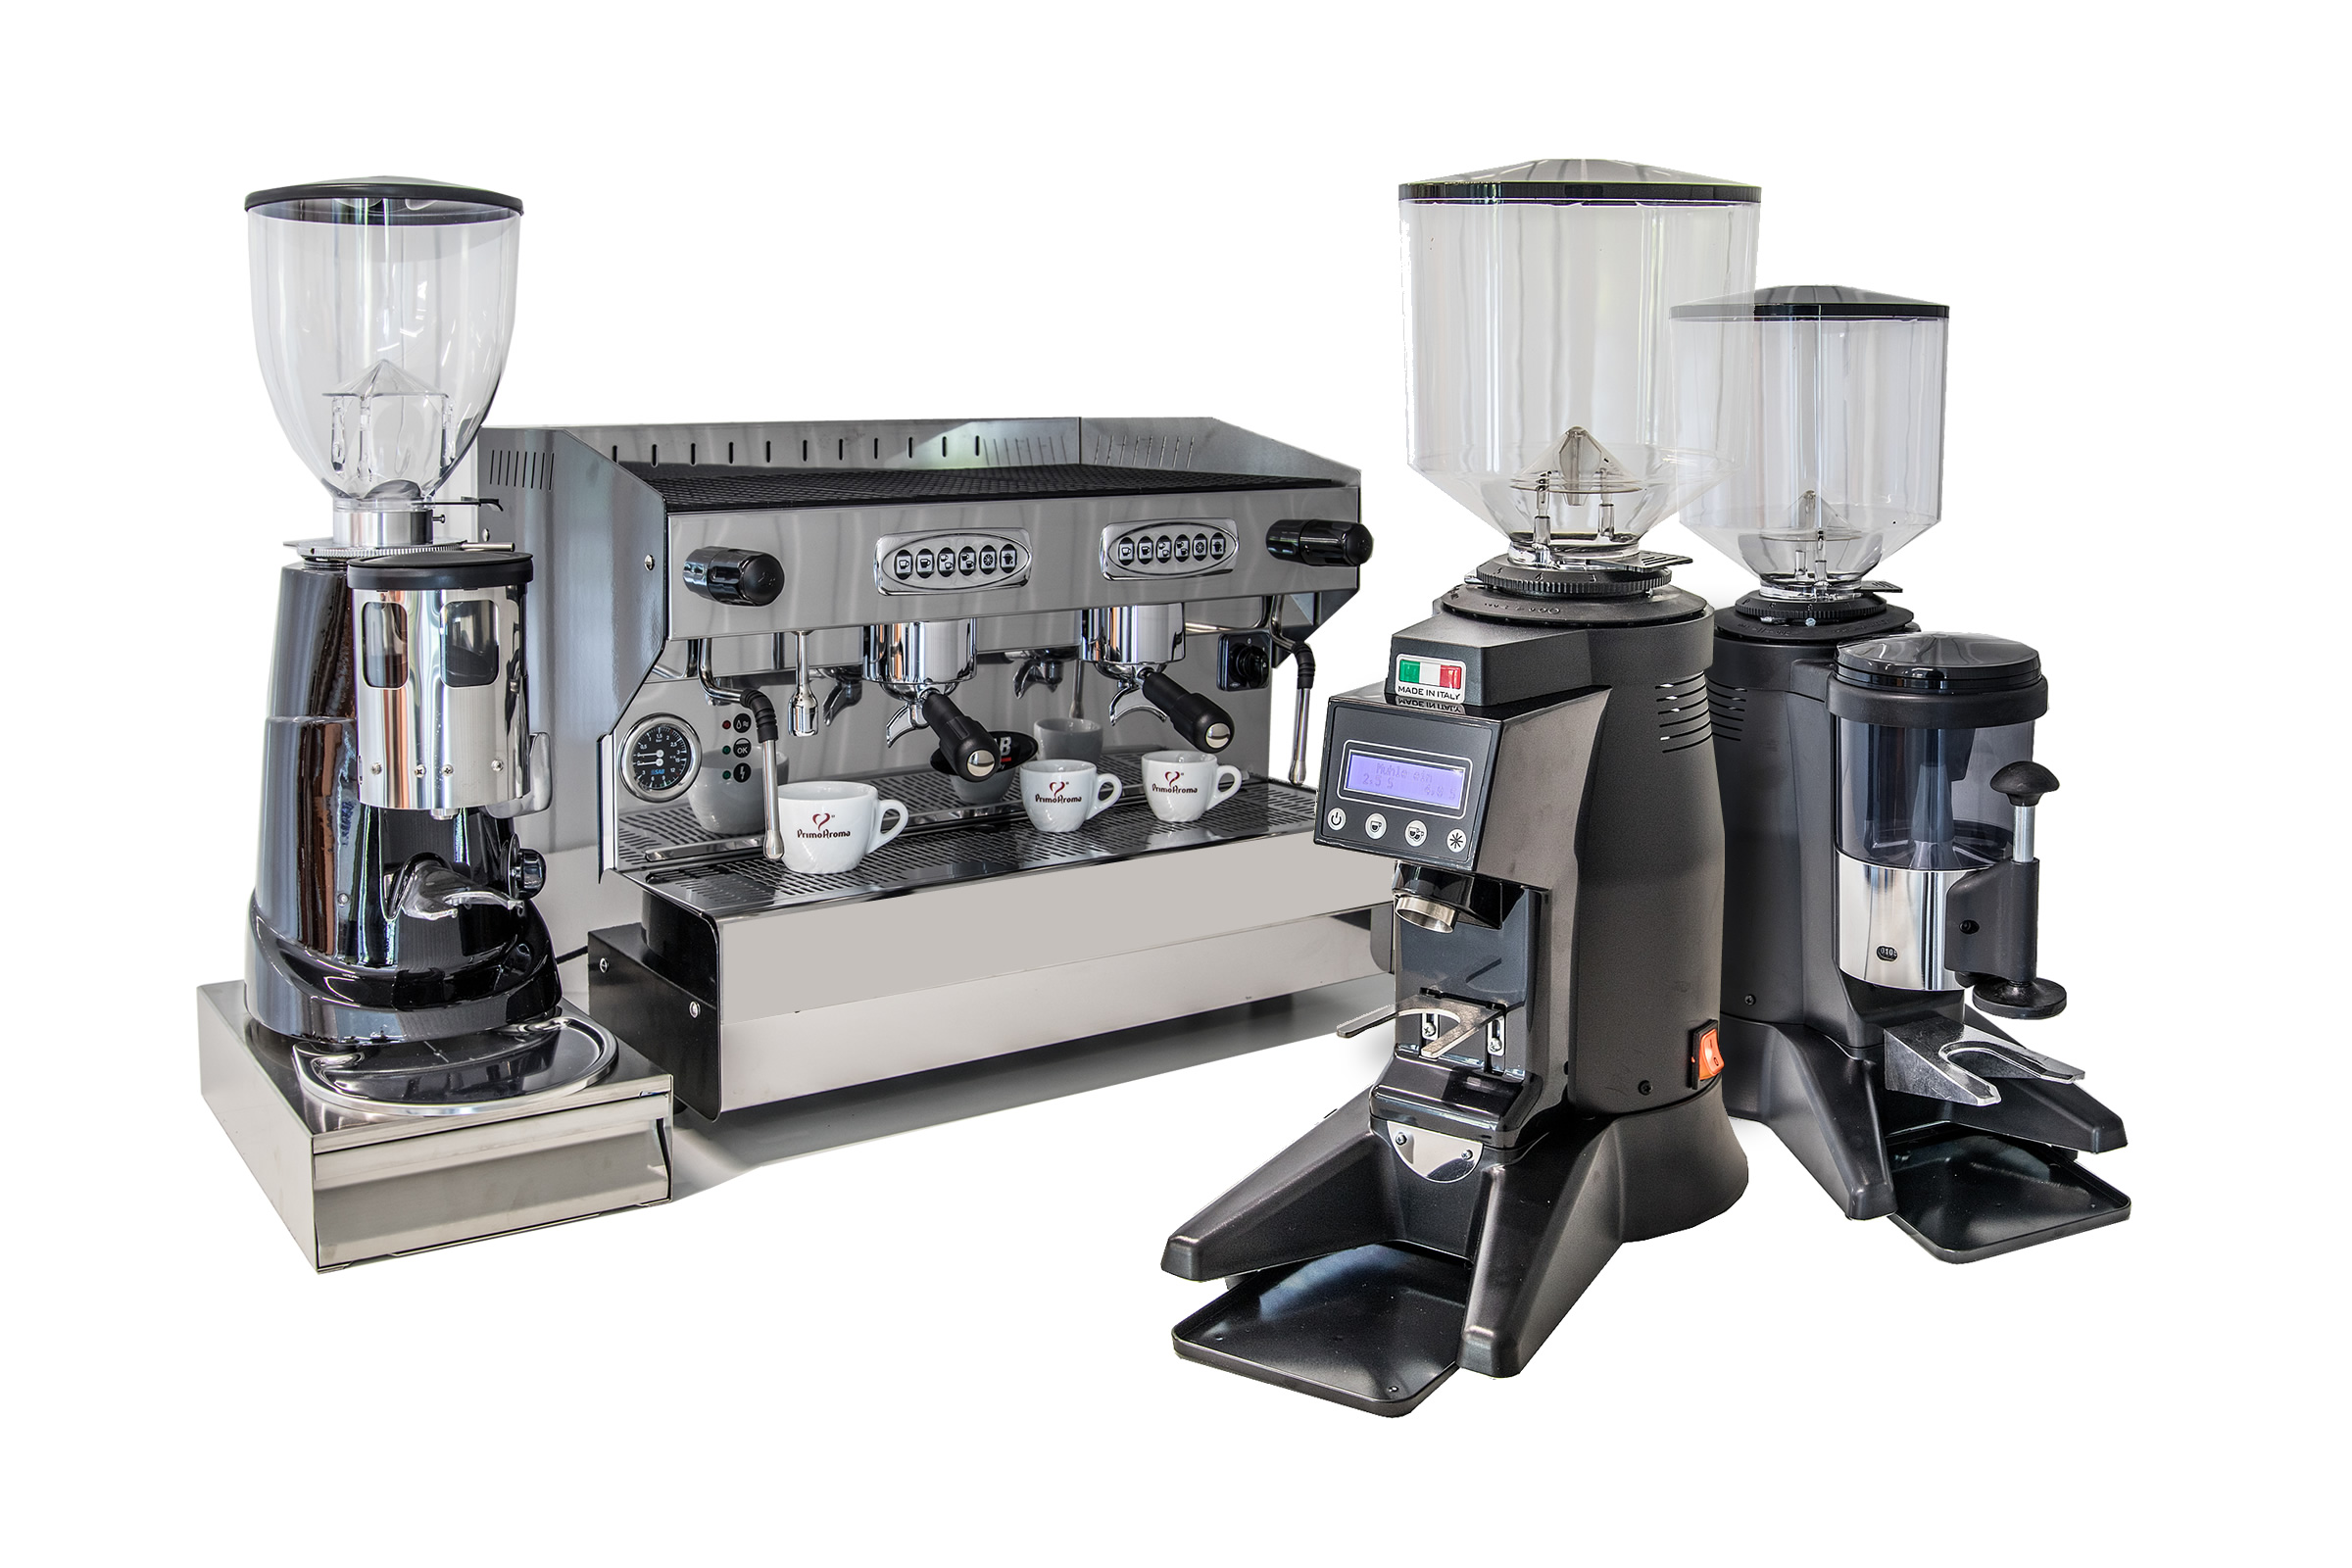 https://shop.primo-aroma.de/kaffeemuehlen/143-kaffee-dosiermuehle-sab-mdf64a.html?live_configurator_token=05fe98e0e62e1e03977a160d911c9b3d&id_shop=1&id_employee=1&theme=&theme_font=